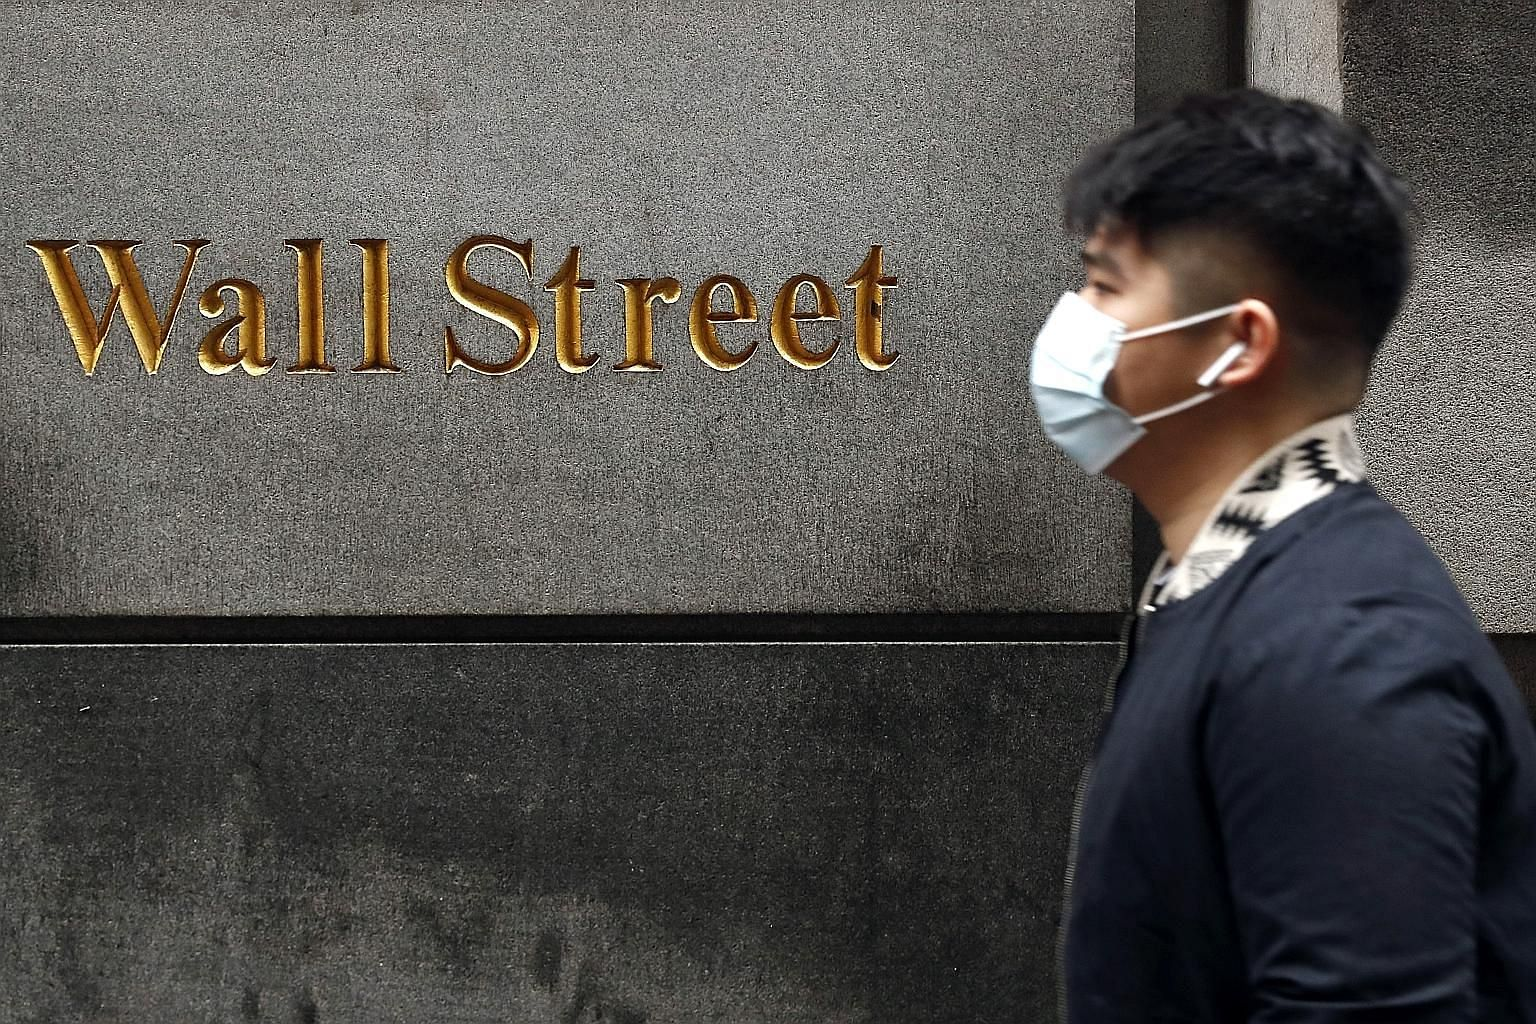 Investors, especially retirees, left shell-shocked by the coronavirus-hit financial markets will need to scrutinise sales pitches for policies such as fixed-indexed annuities, and not jump to make purchases in the middle of a major downturn, when the